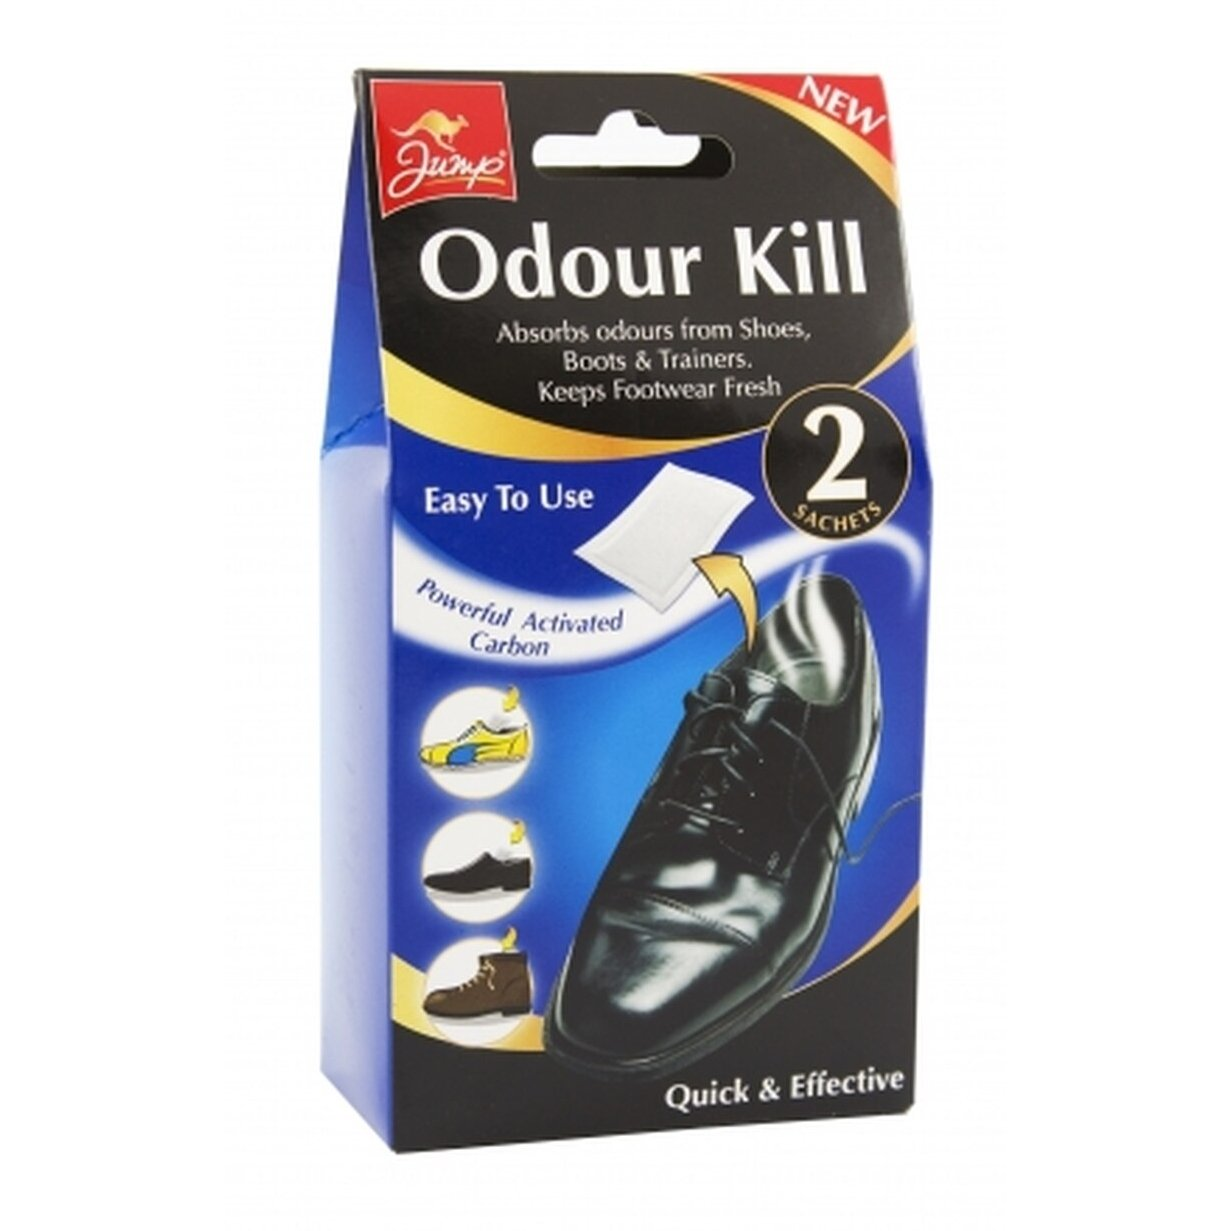 Odour Kill for Shoes